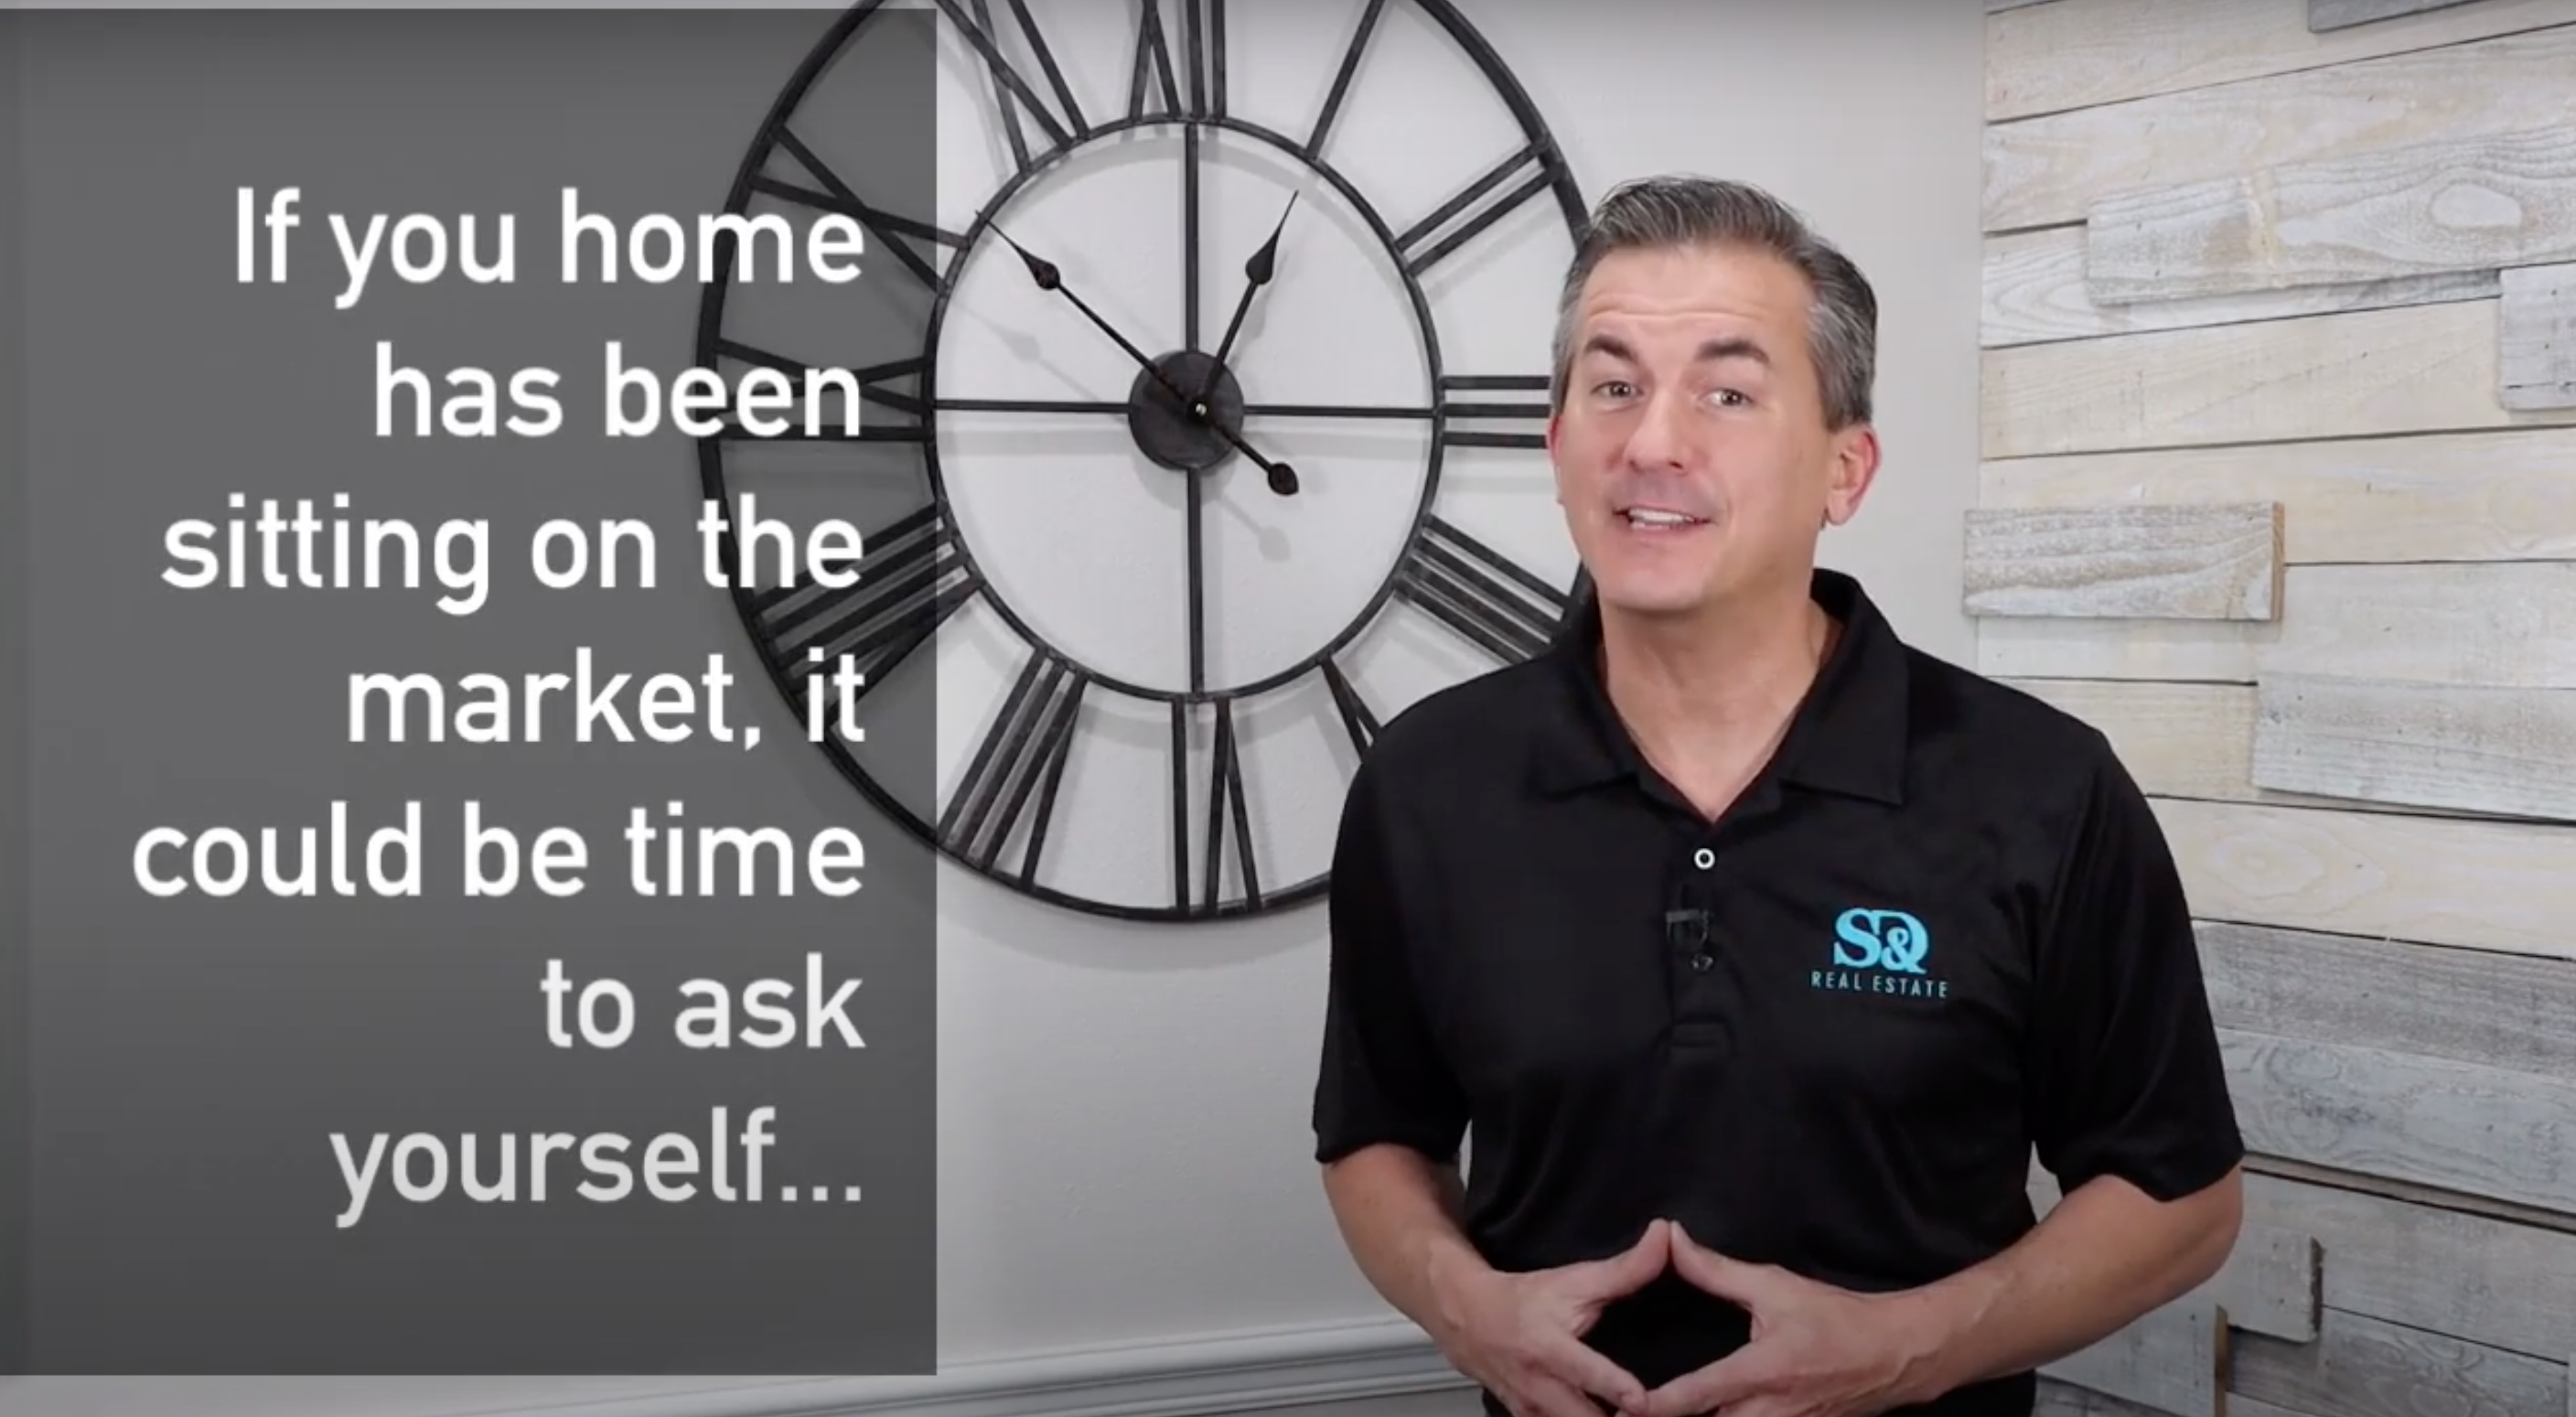 Screenshot from video by S&D Real Estate